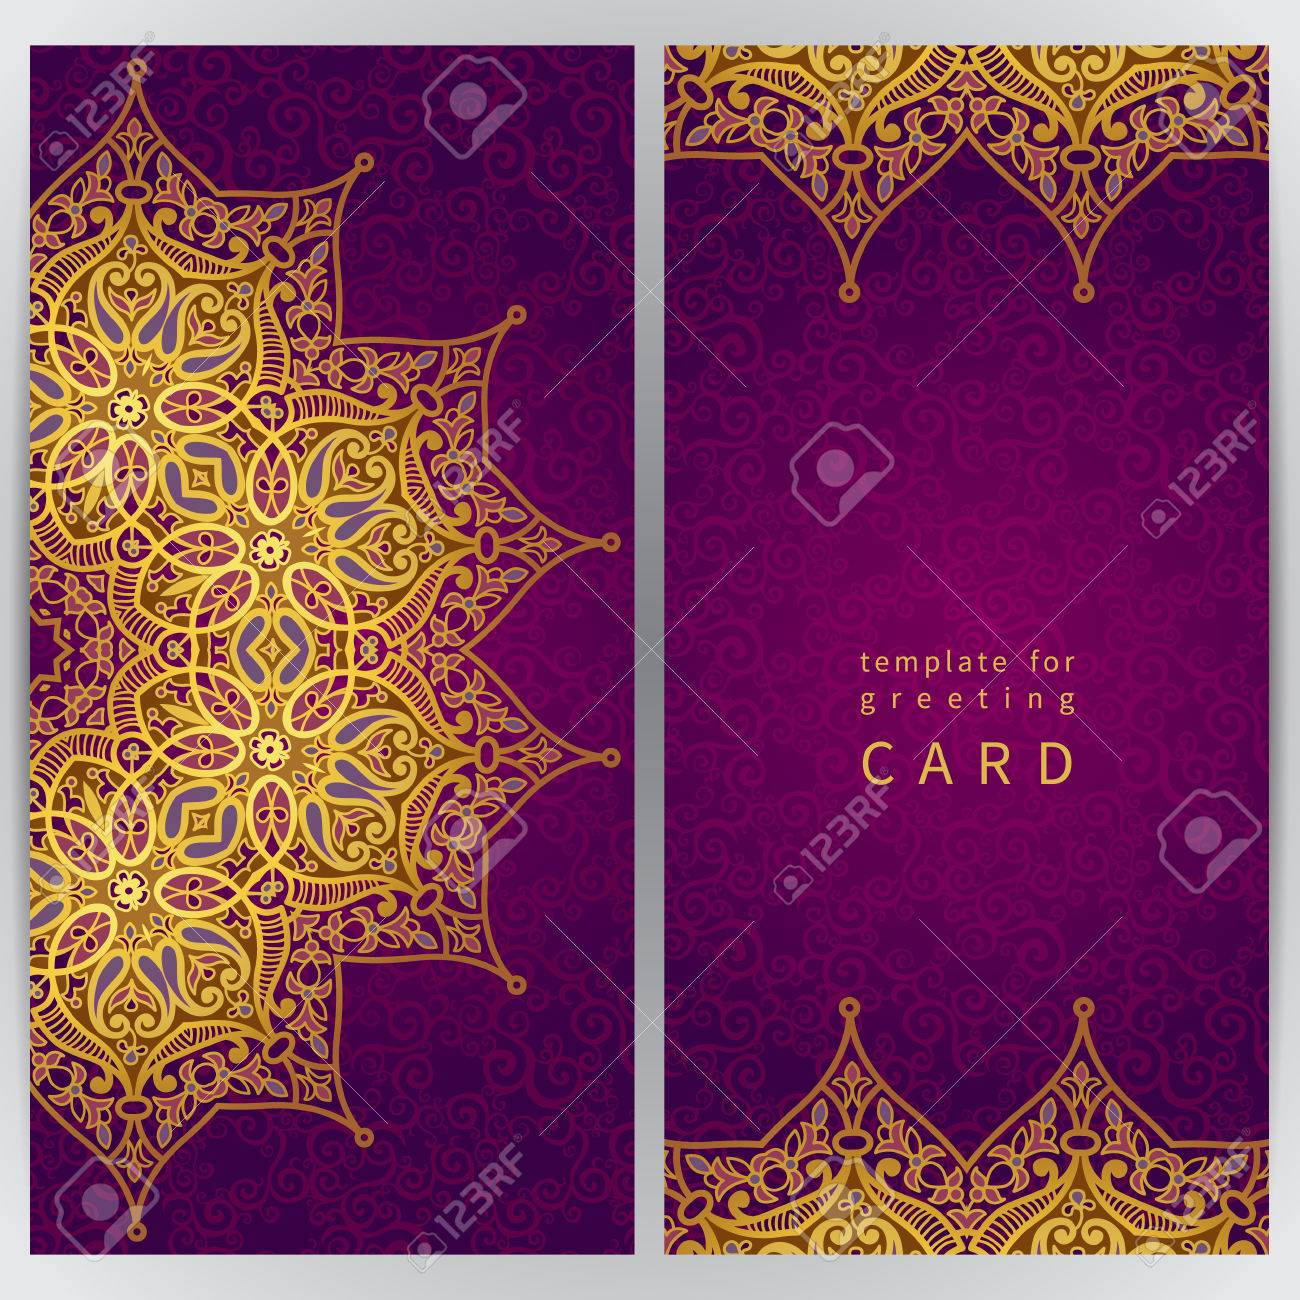 Wedding Card Design Stock Photos Royalty Free Wedding Card Design